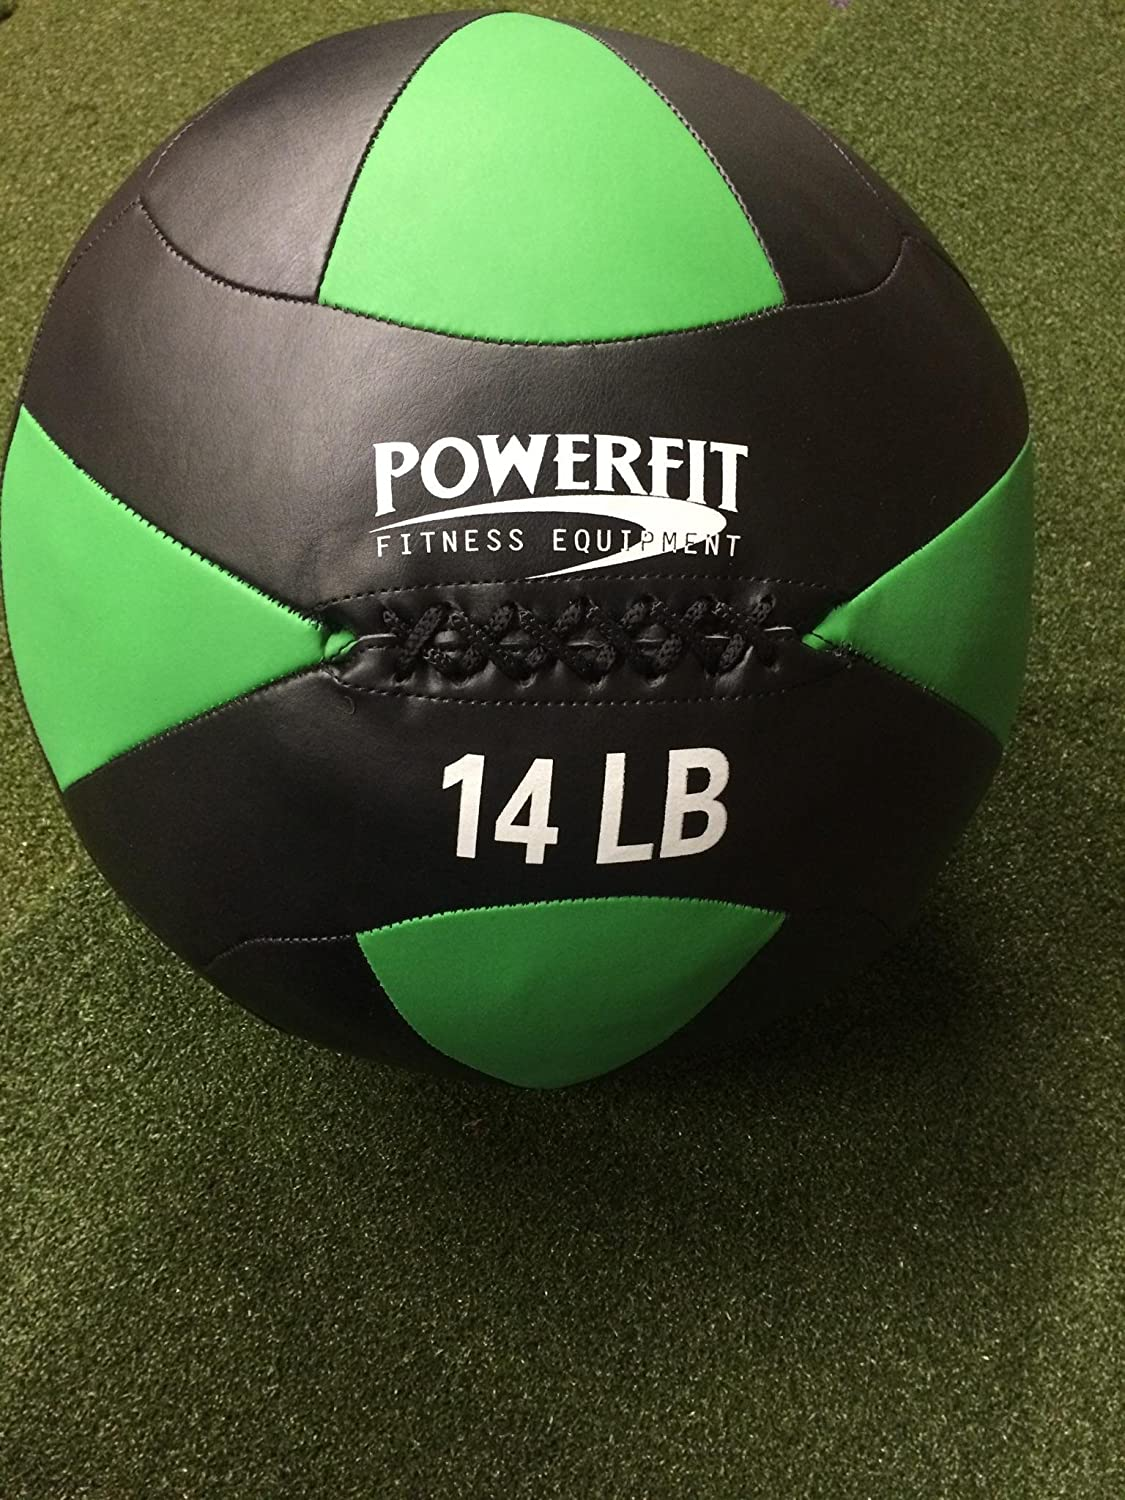 PFX Wall Balls for Commercial and Home Fitness